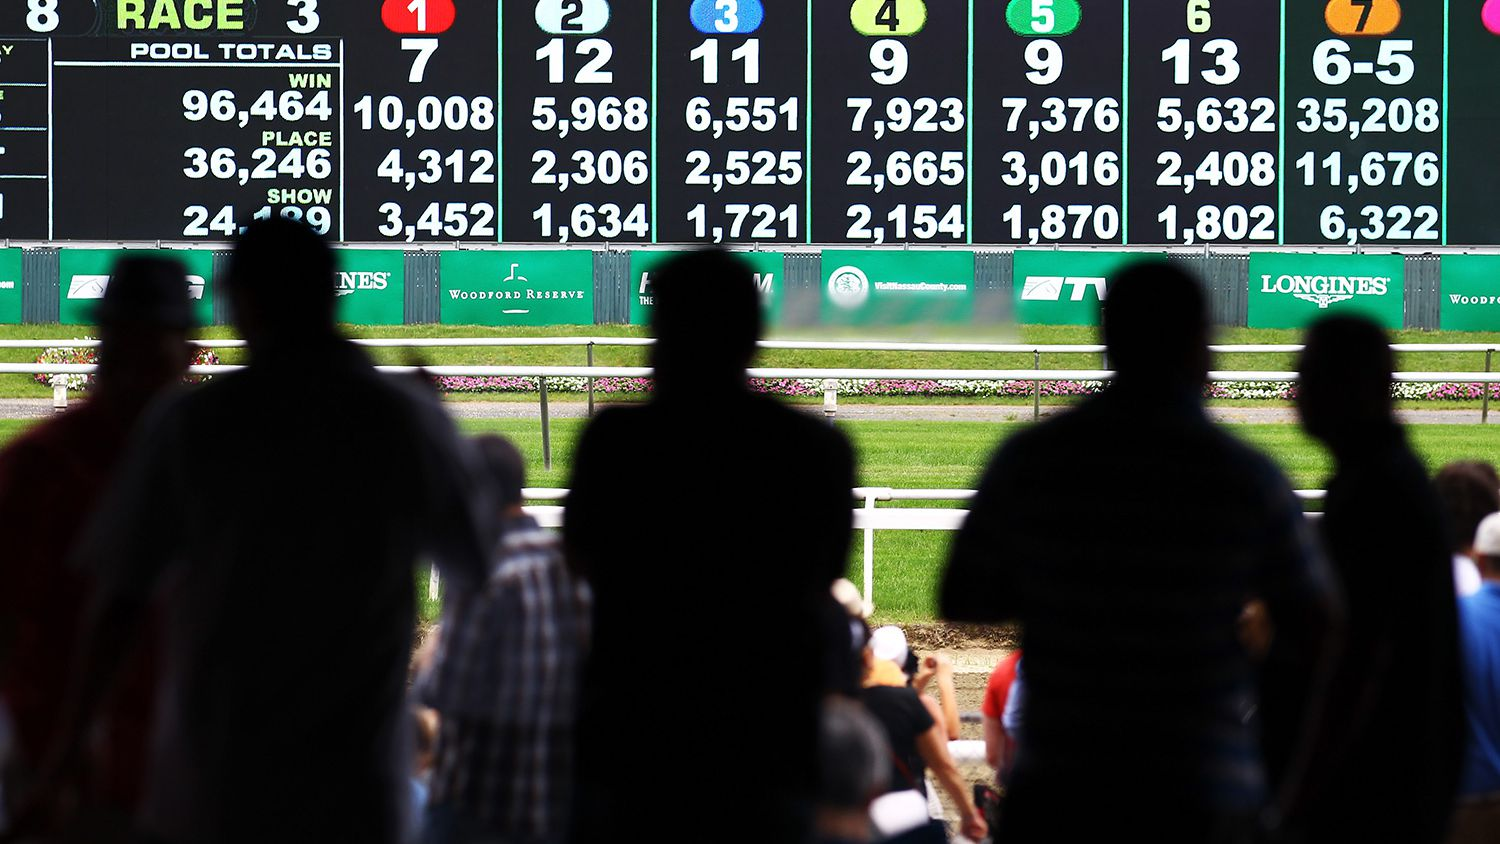 explain betting odds for horse racing